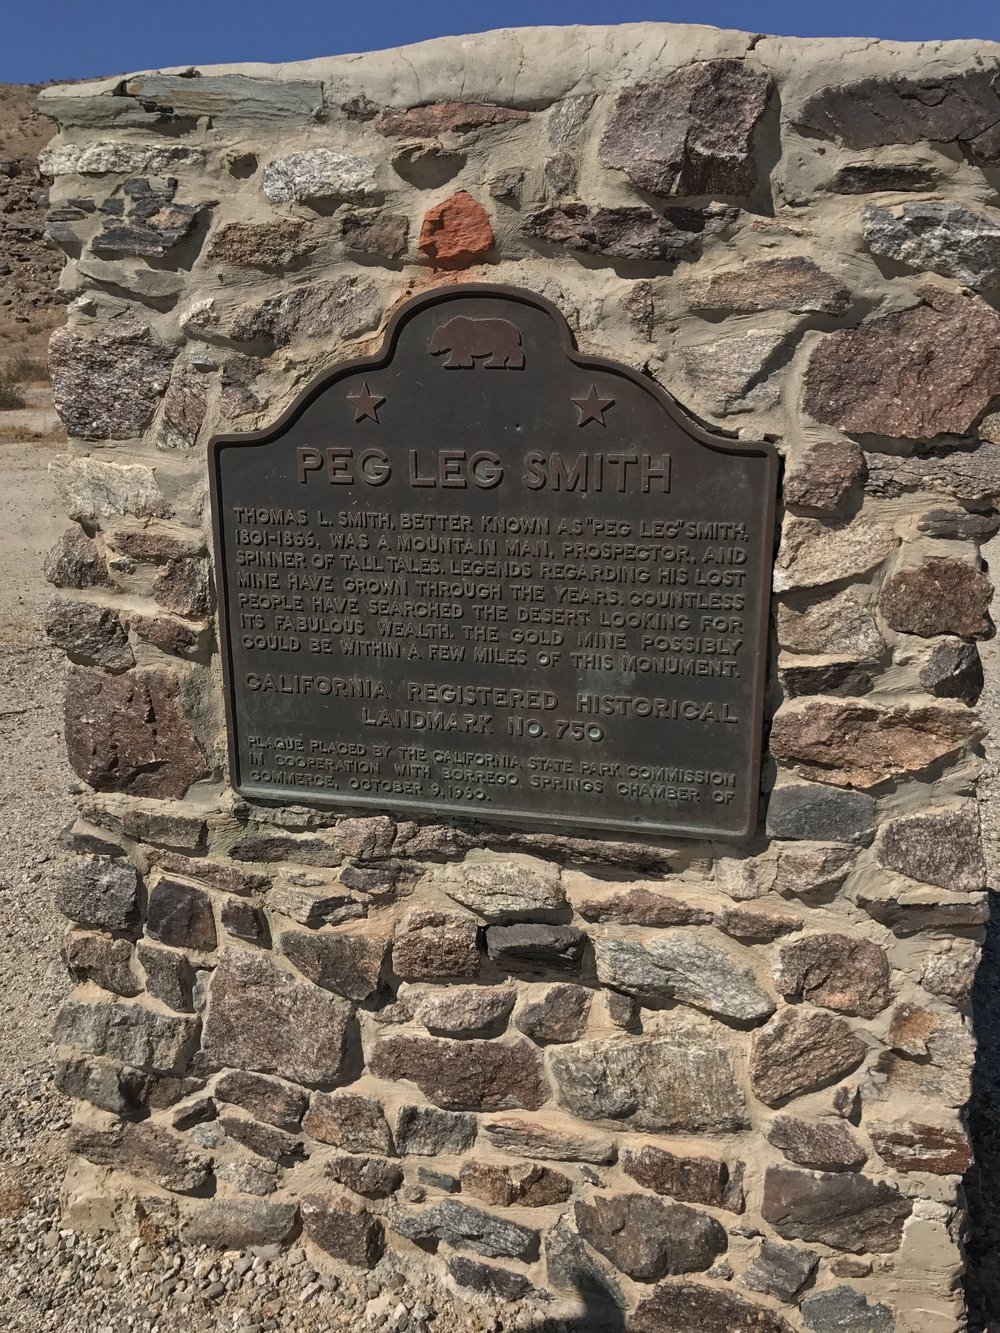 After the original marker was placed, the State of California followed with its own marker some 15 years later.